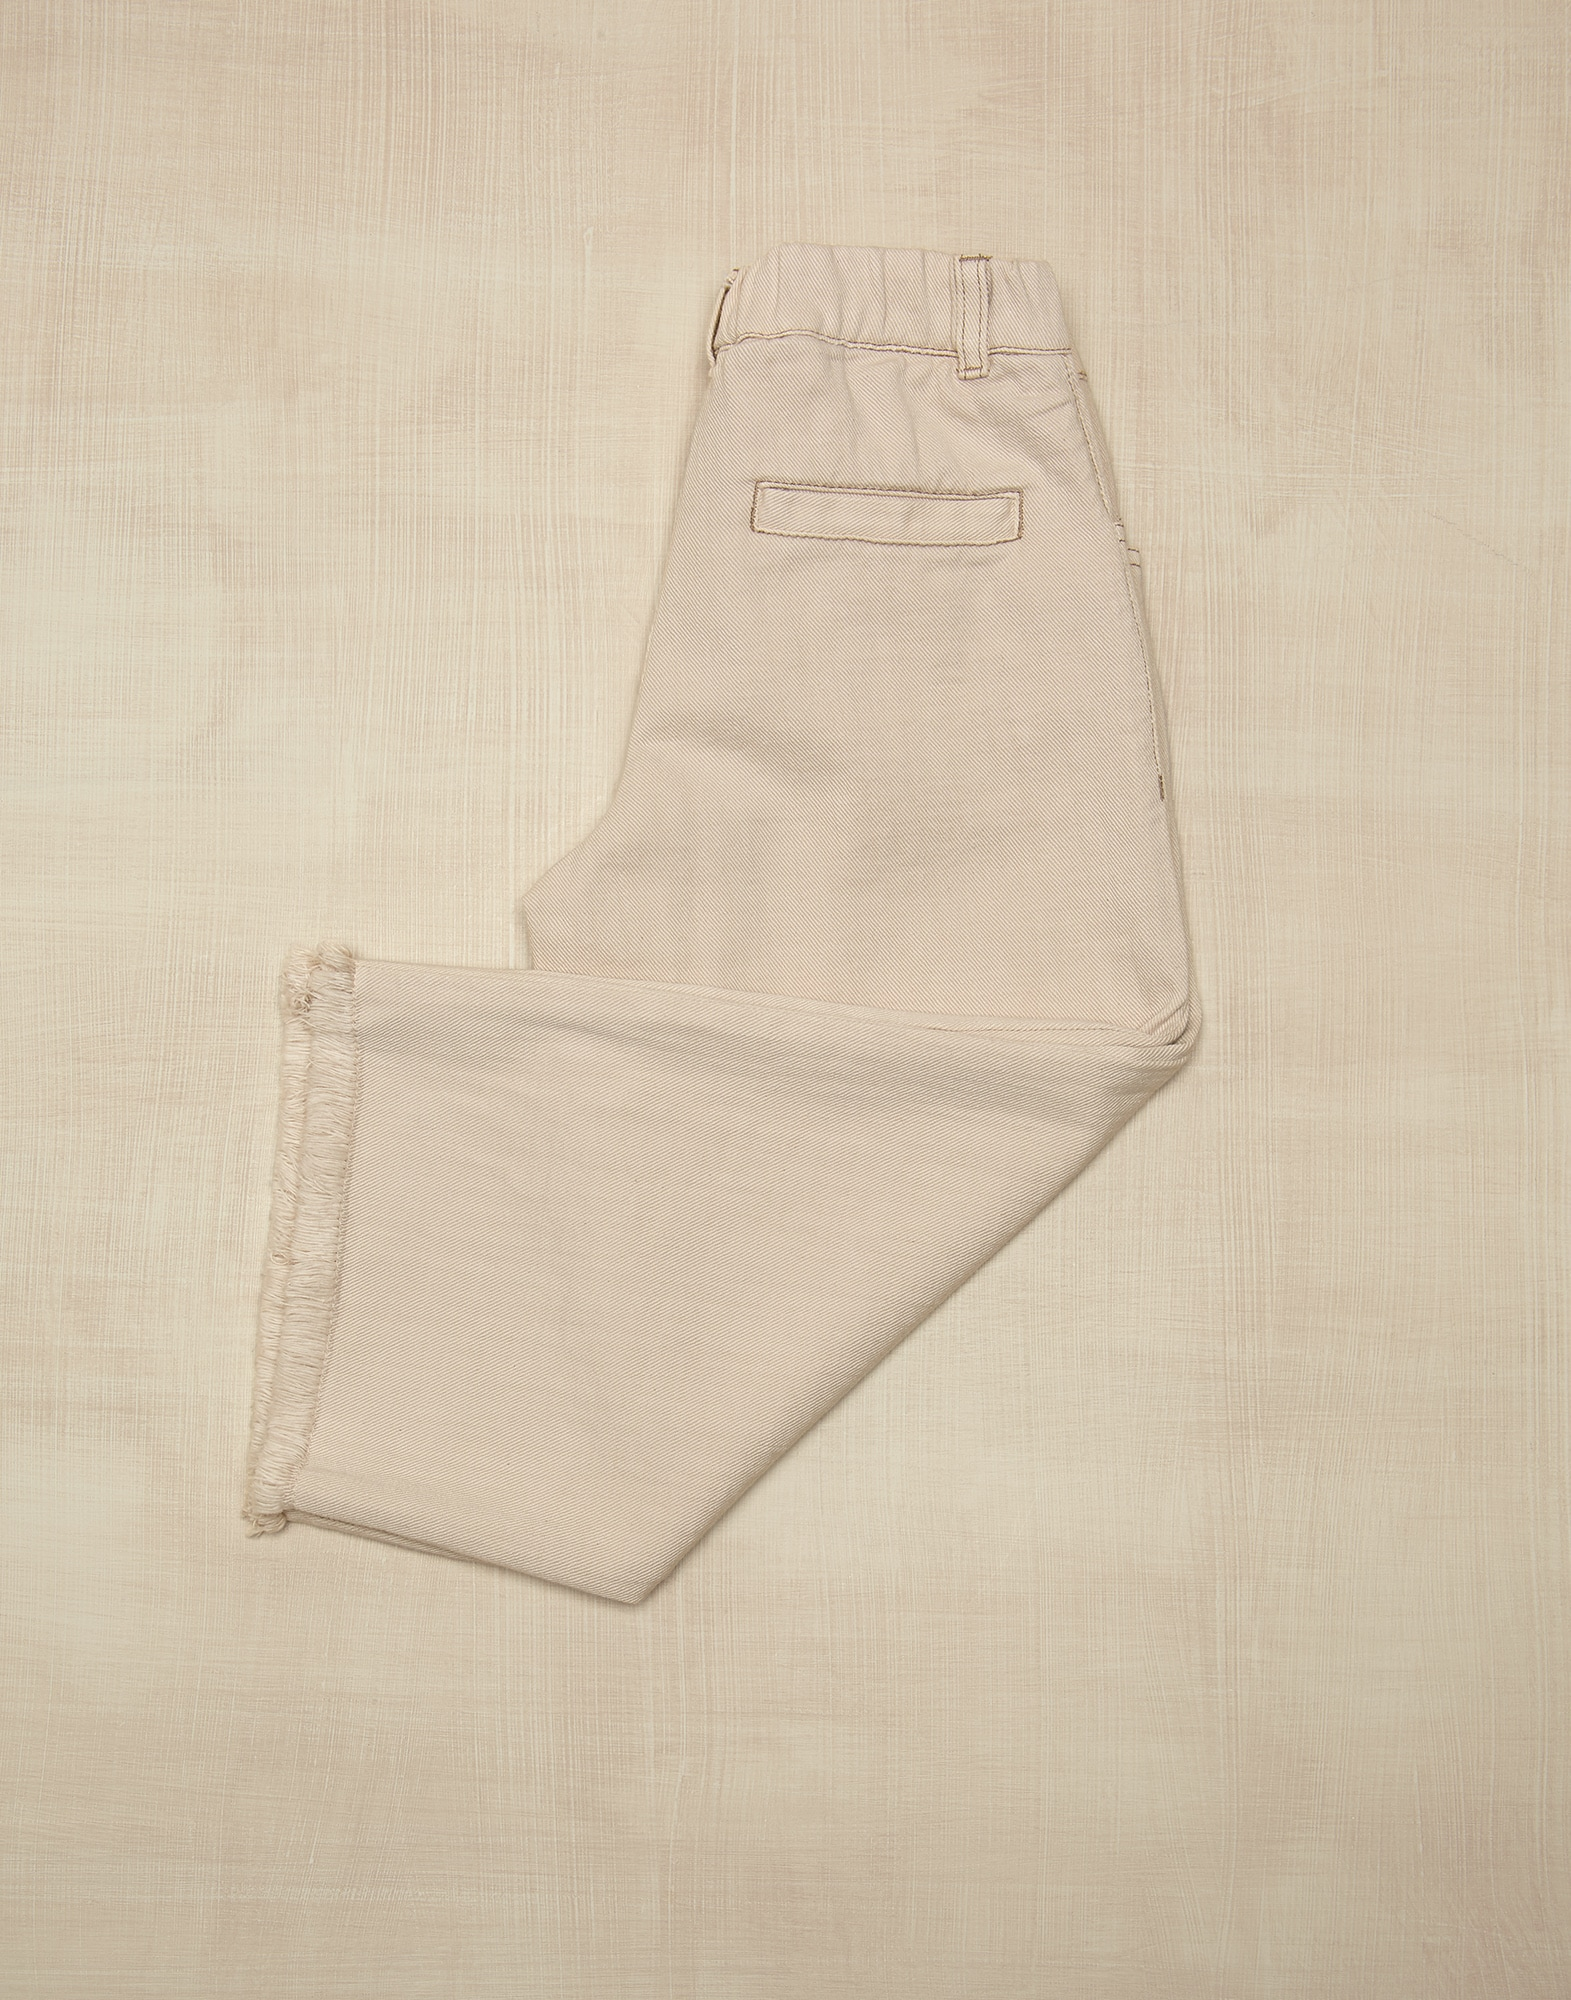 Pantalon en Denim Lait Fille 1 - Brunello Cucinelli